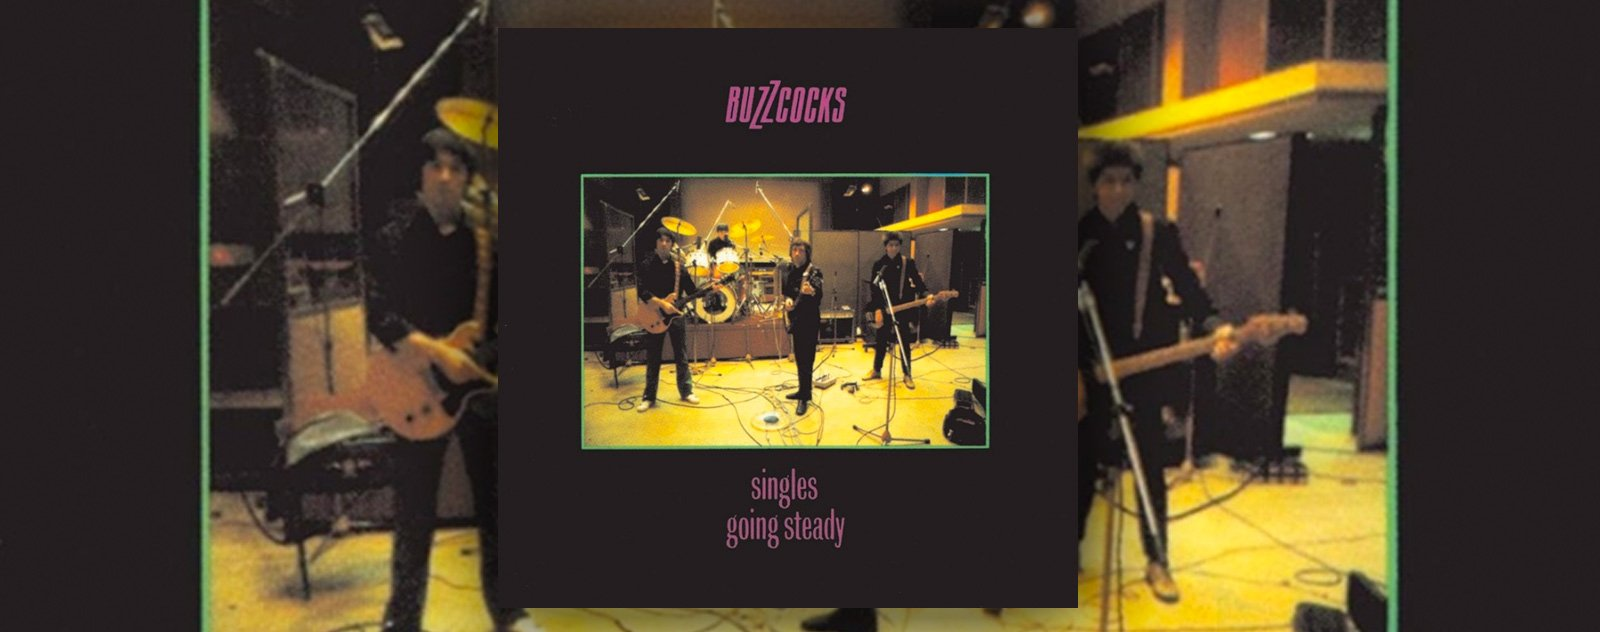 The Buzzcocks Singles Going Steady